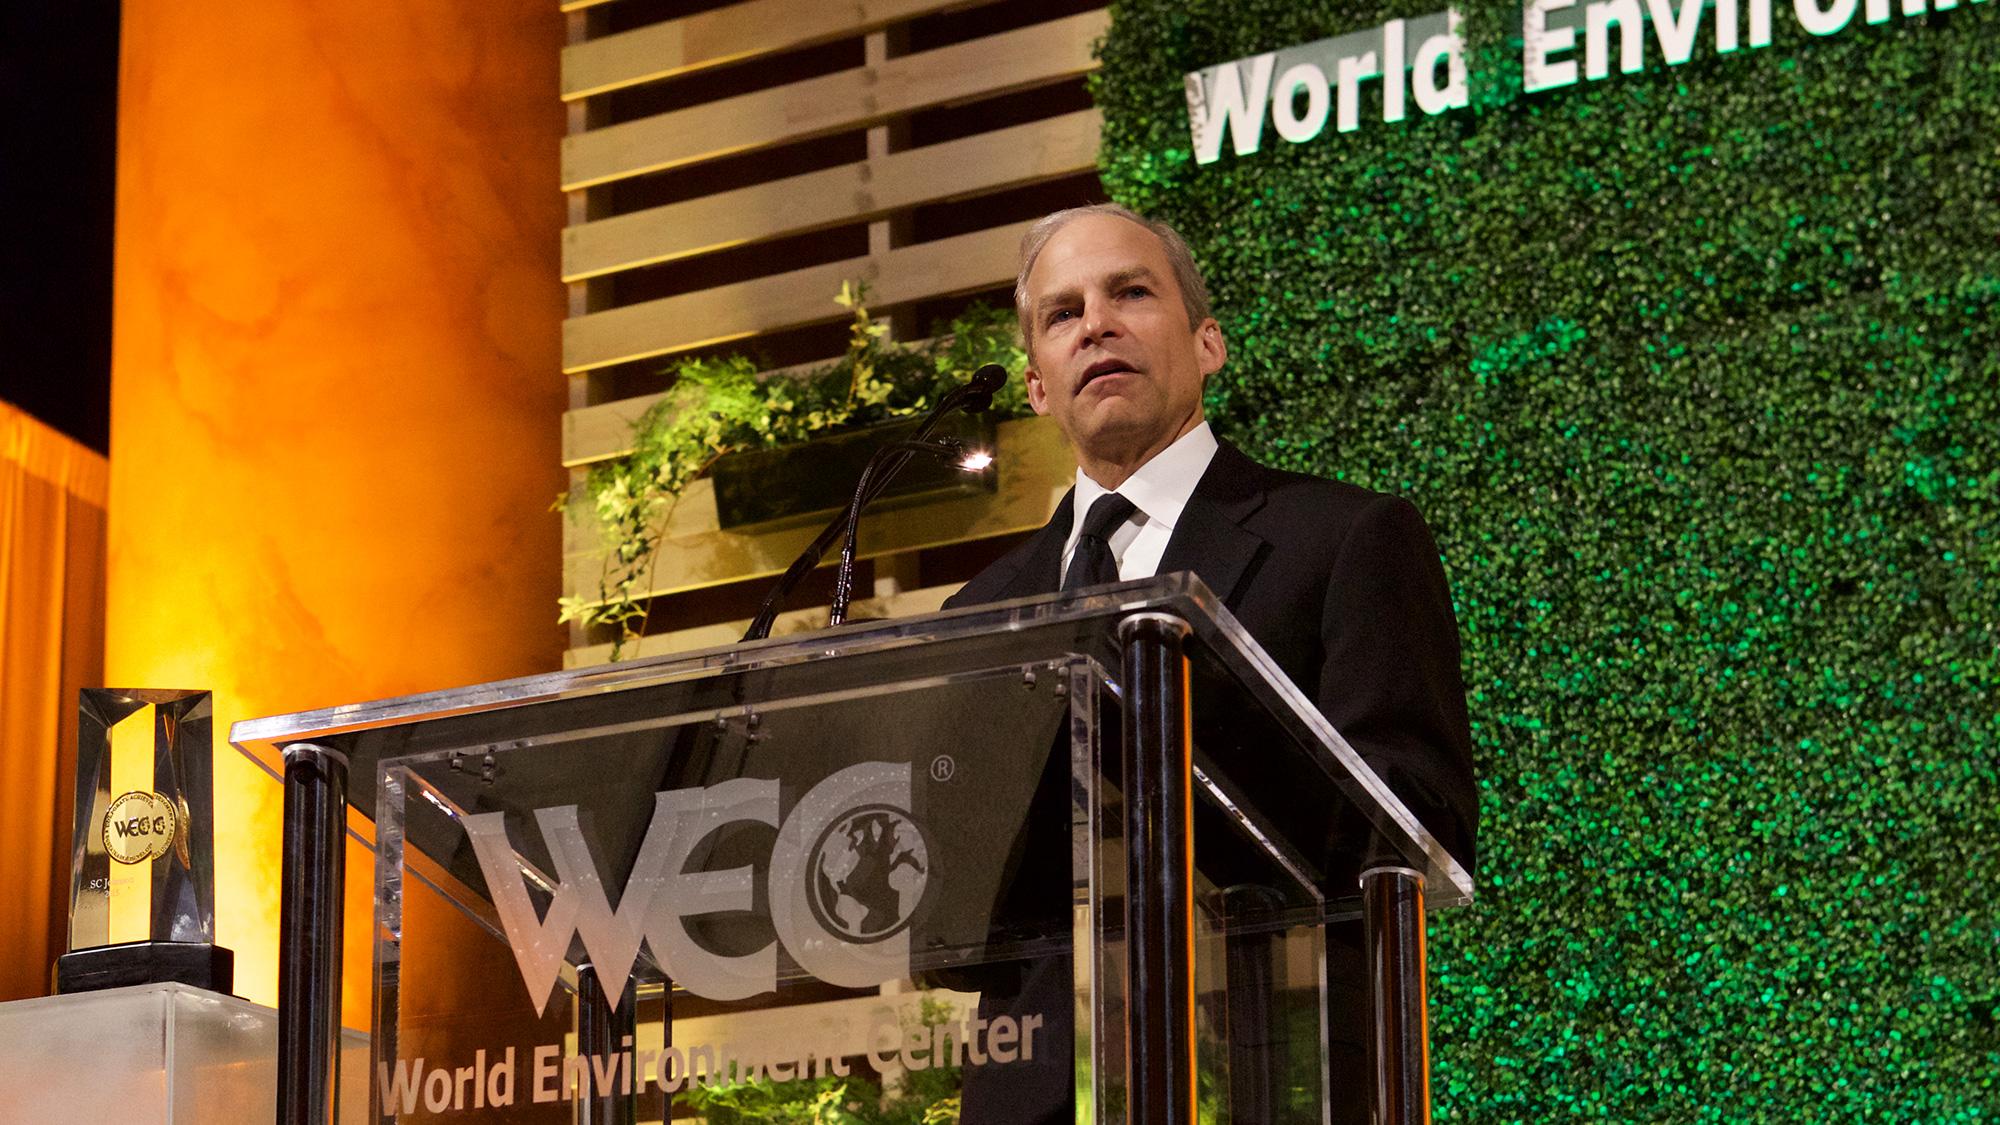 H Fisk Johnson acepta el premio Medalla de Oro 2015 del World Environment Center por sus logros en desarrollo sustentable